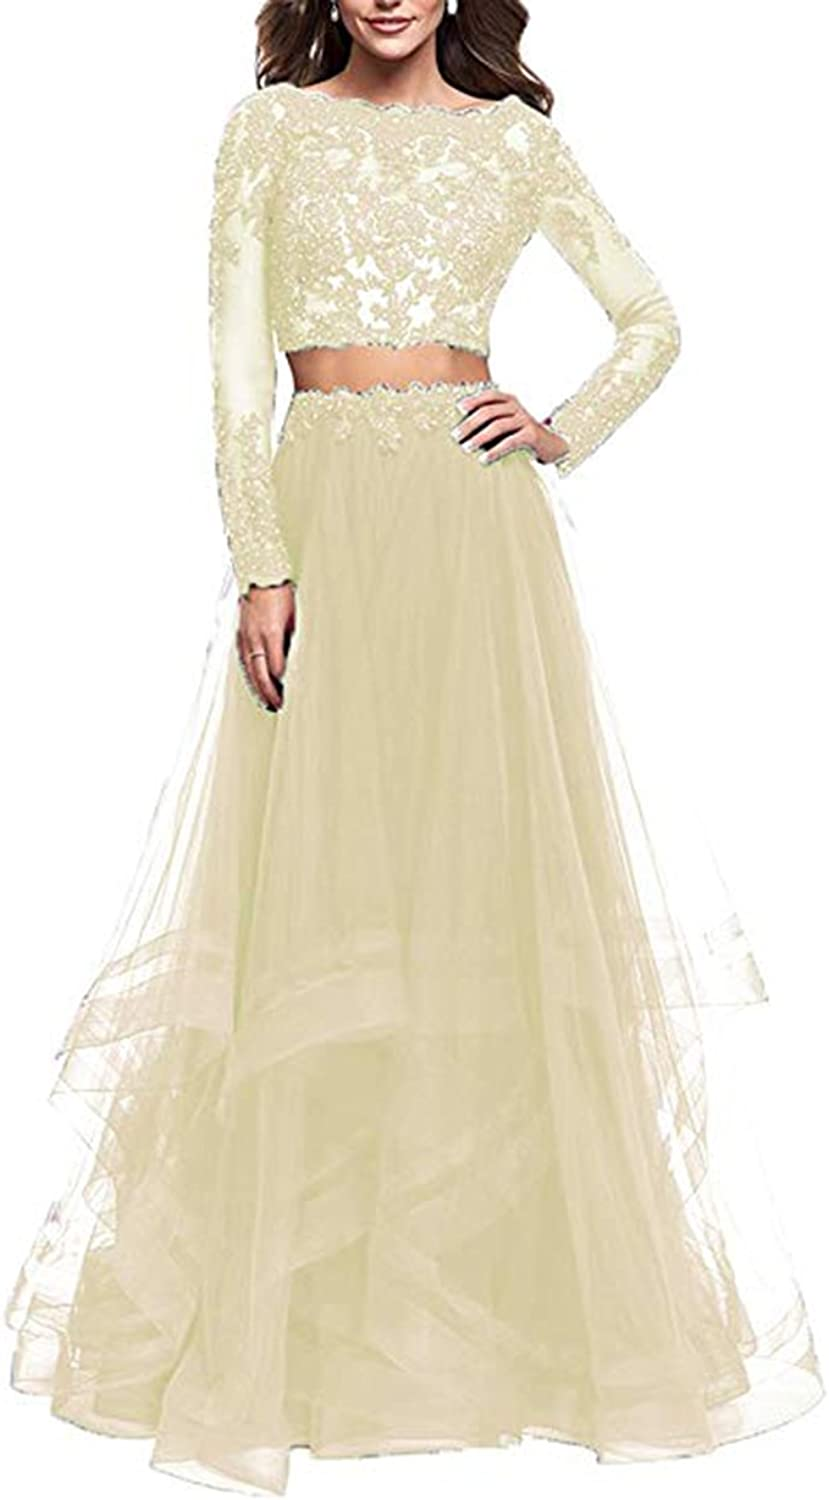 Alilith.Z Sexy Illusion Appliques Tulle 2 Piece Prom Dresses Long Formal Evening Party Gowns for Women with Sleeves